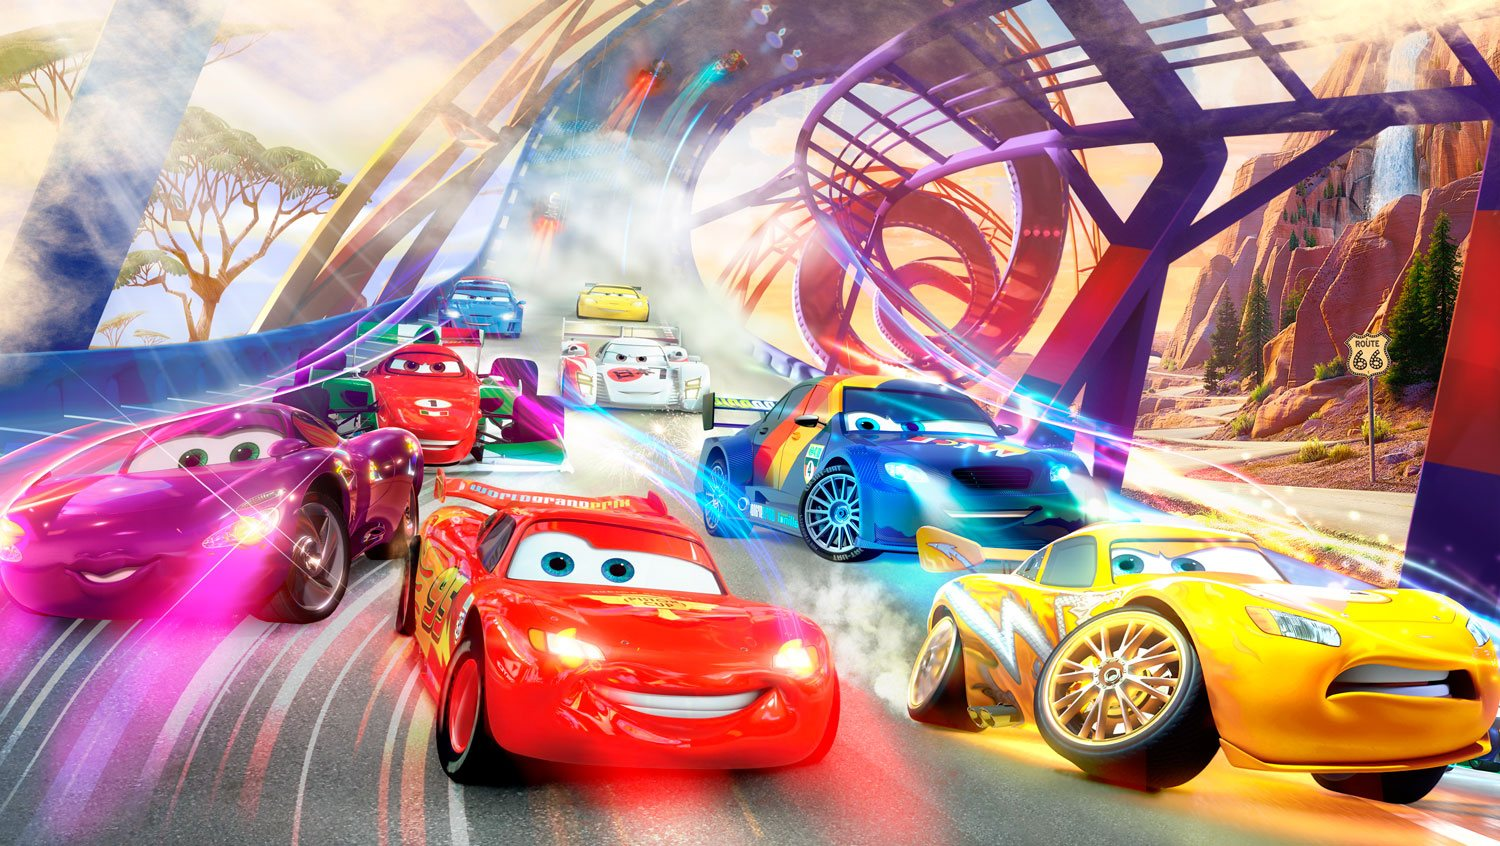 Wall Murals: Cars race, Disney